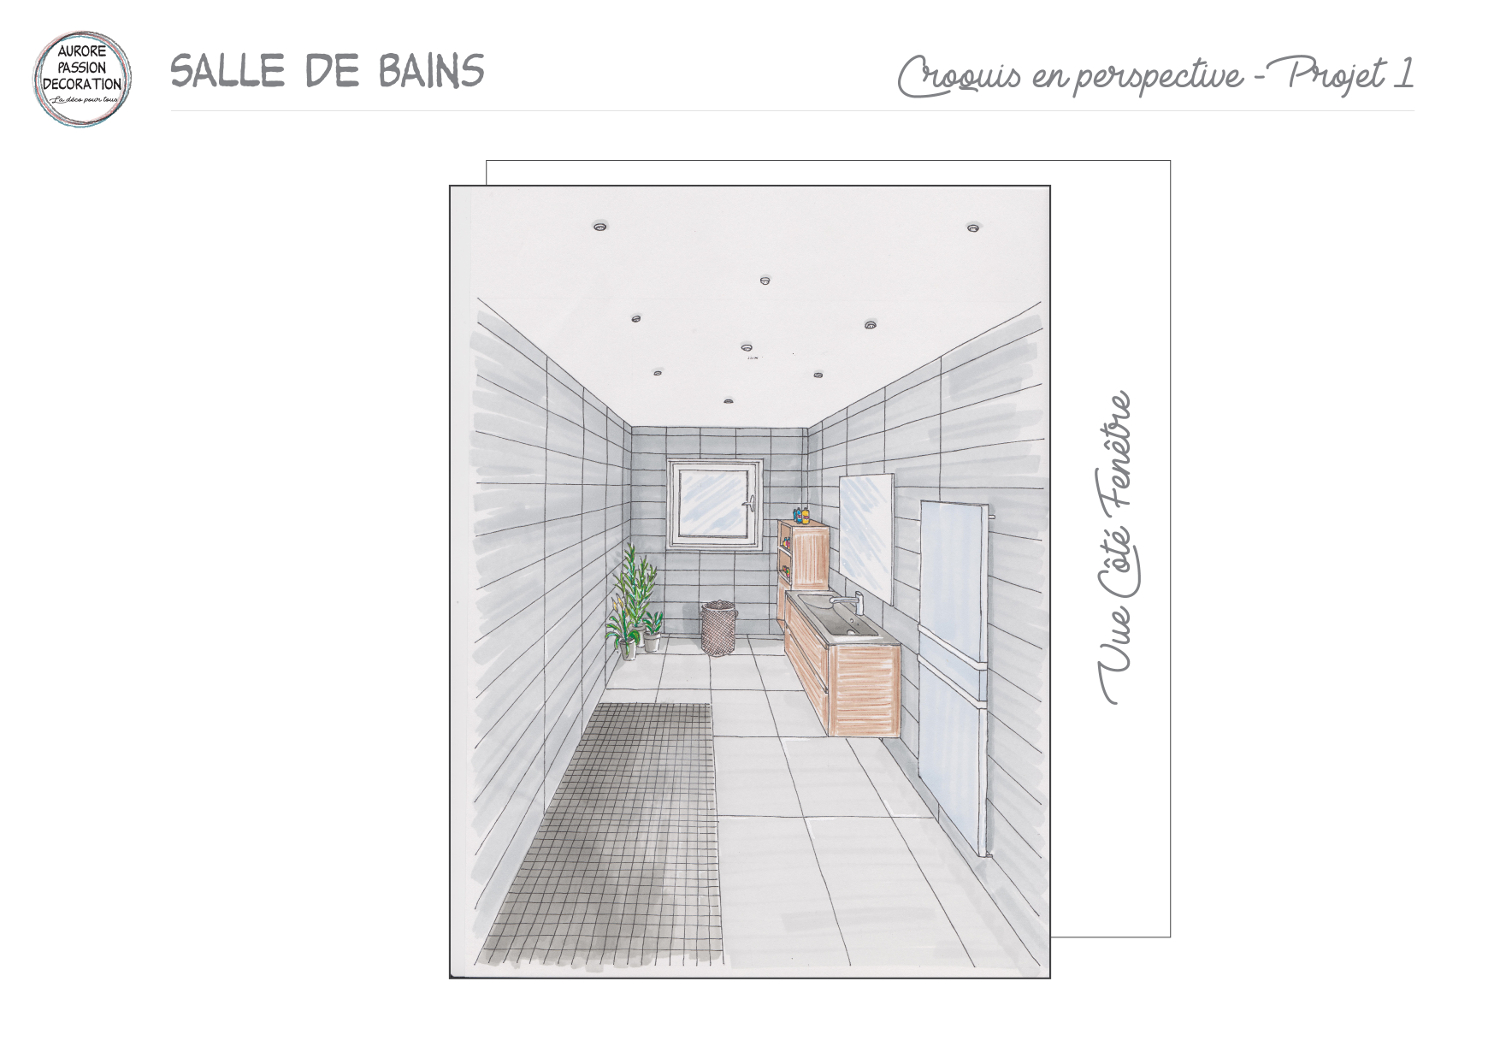 SDB Projet 1 perspective-01